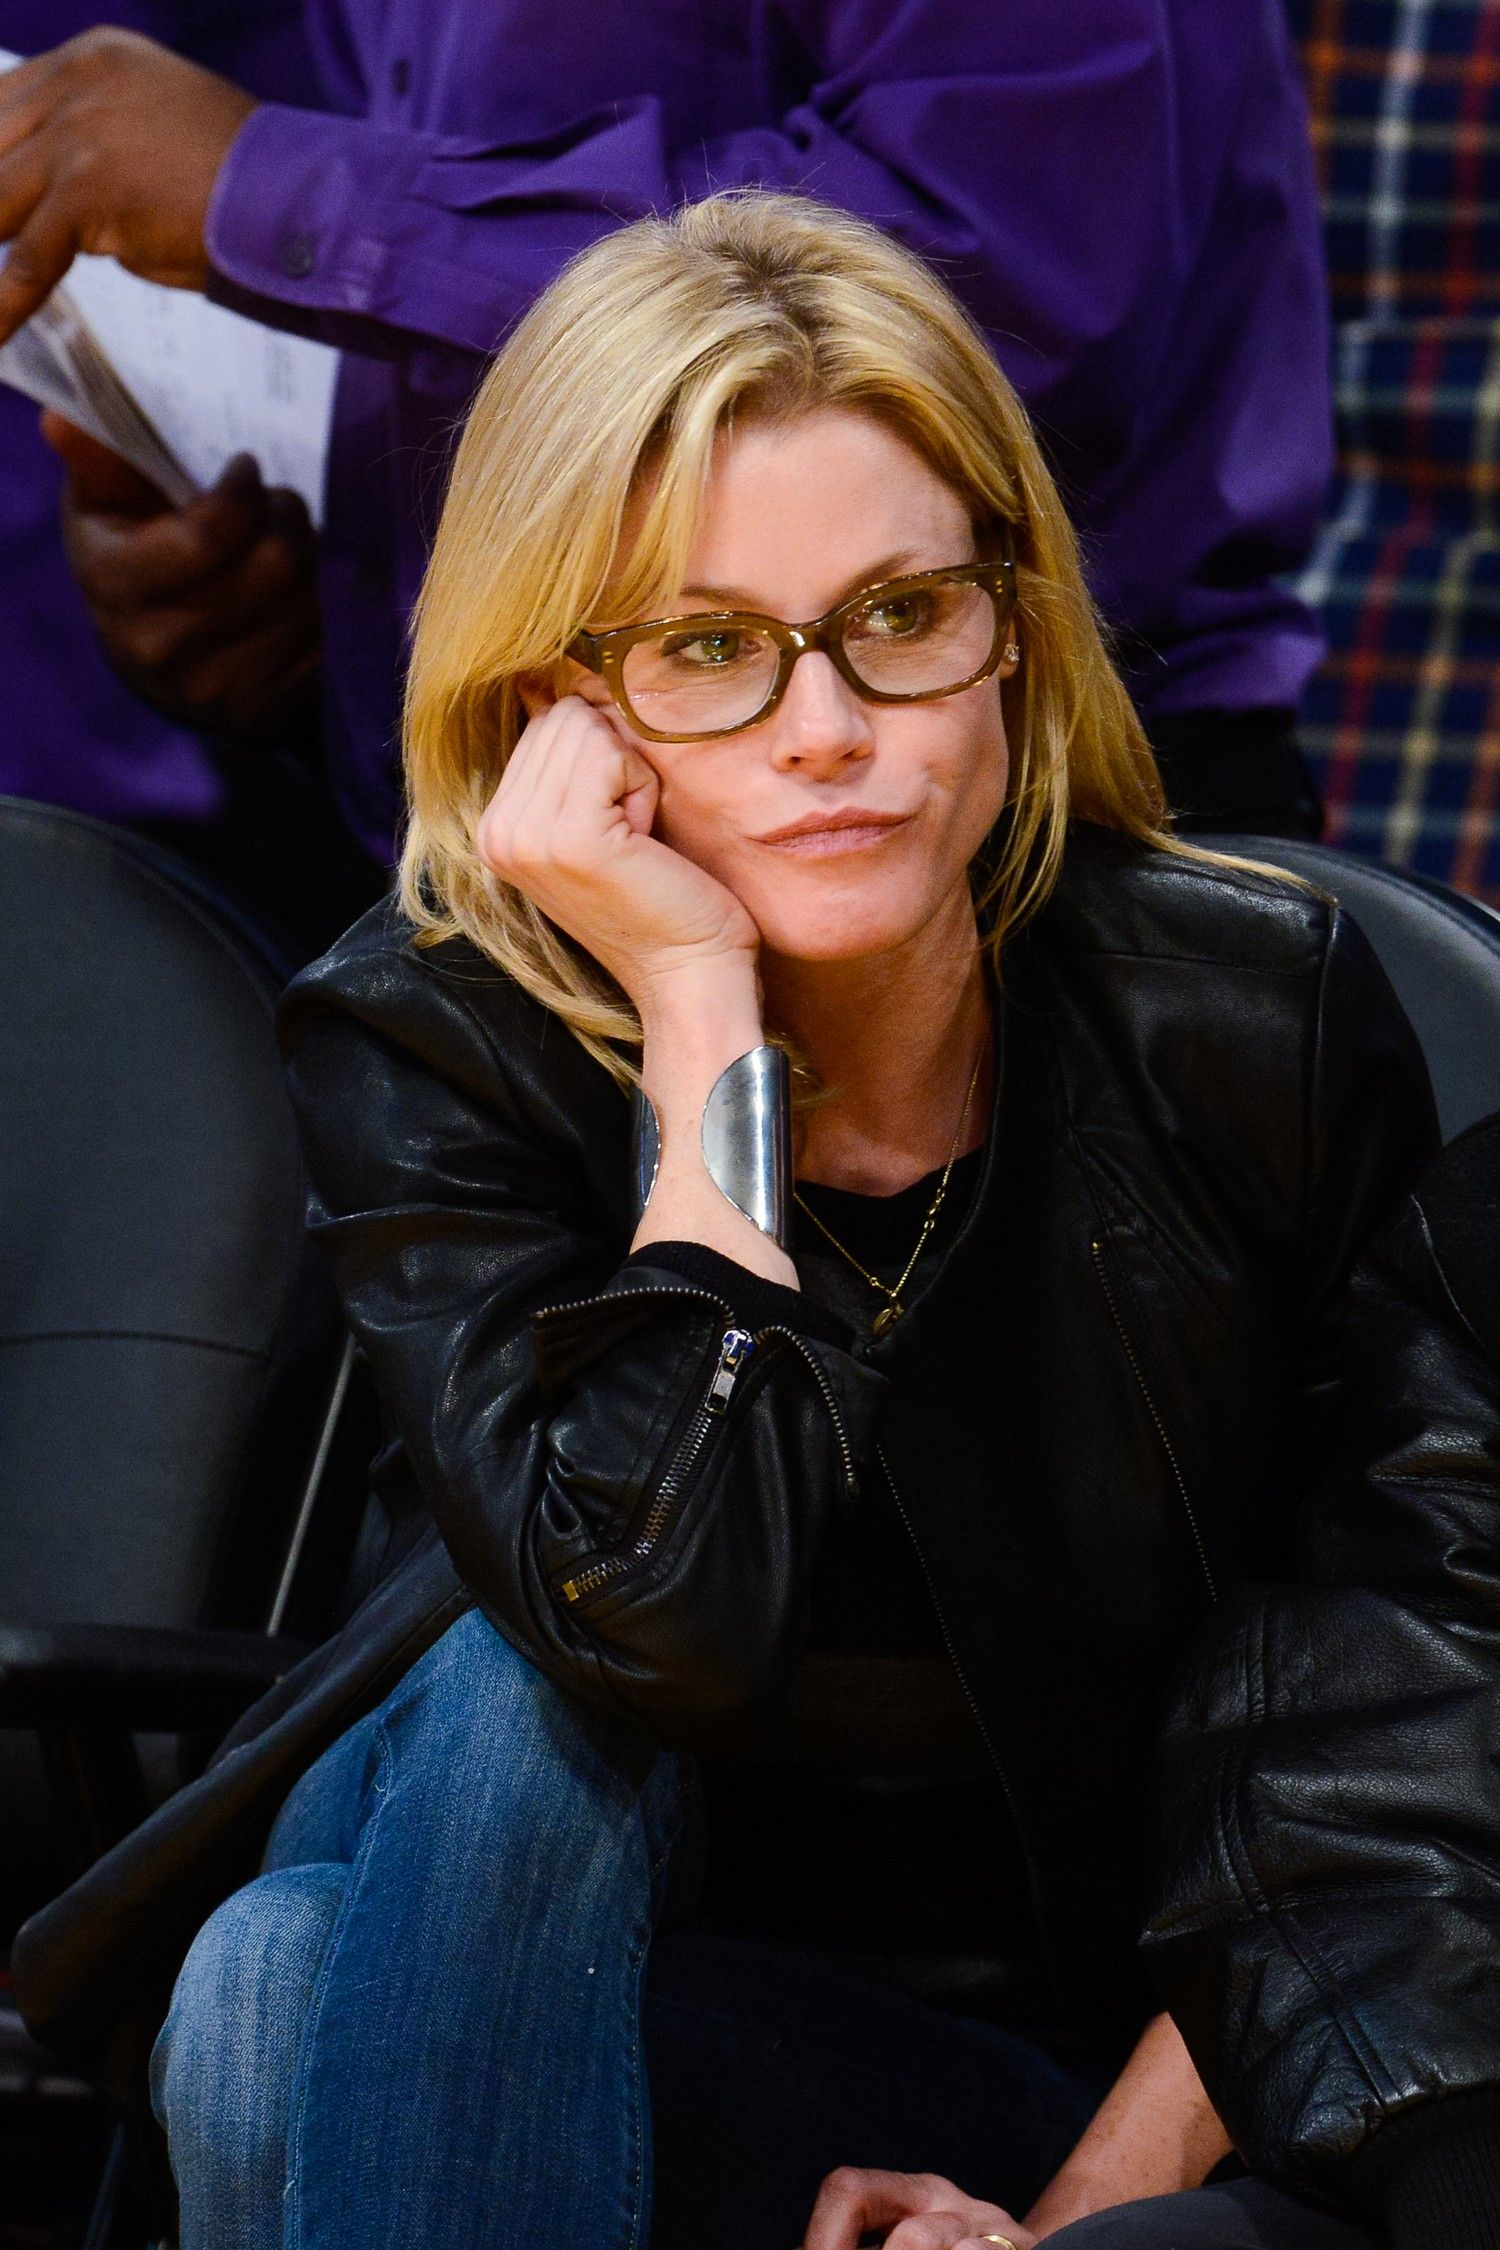 Julie Bowen is known as Claire Dunphy on the TV series